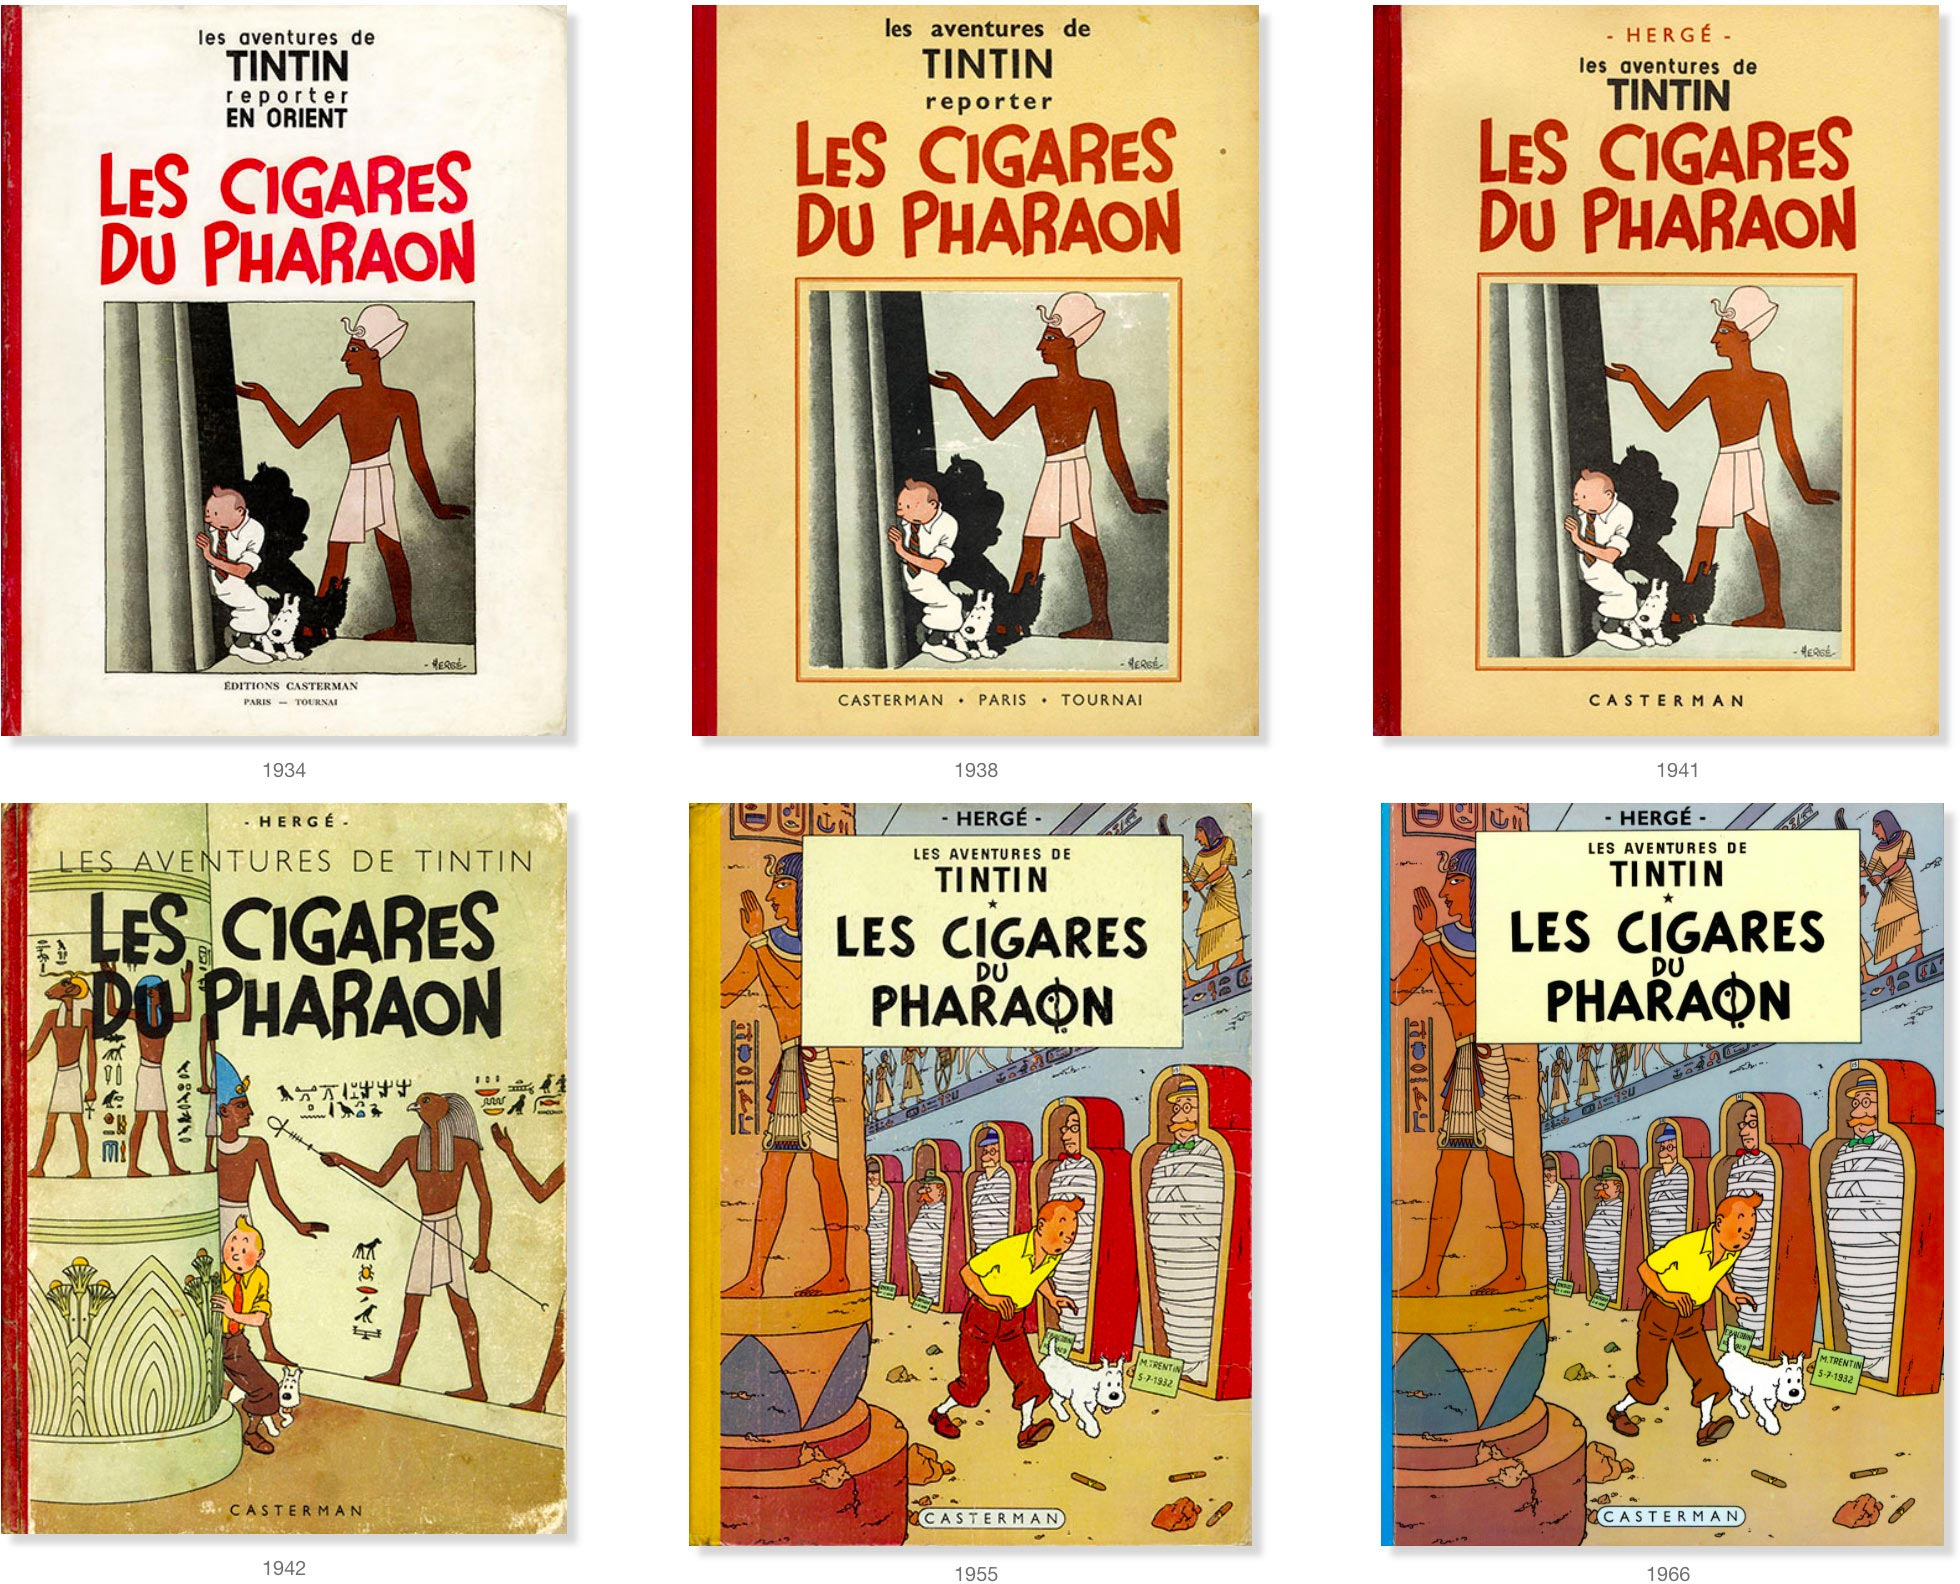 Cigars of the Pharaoh covers in French